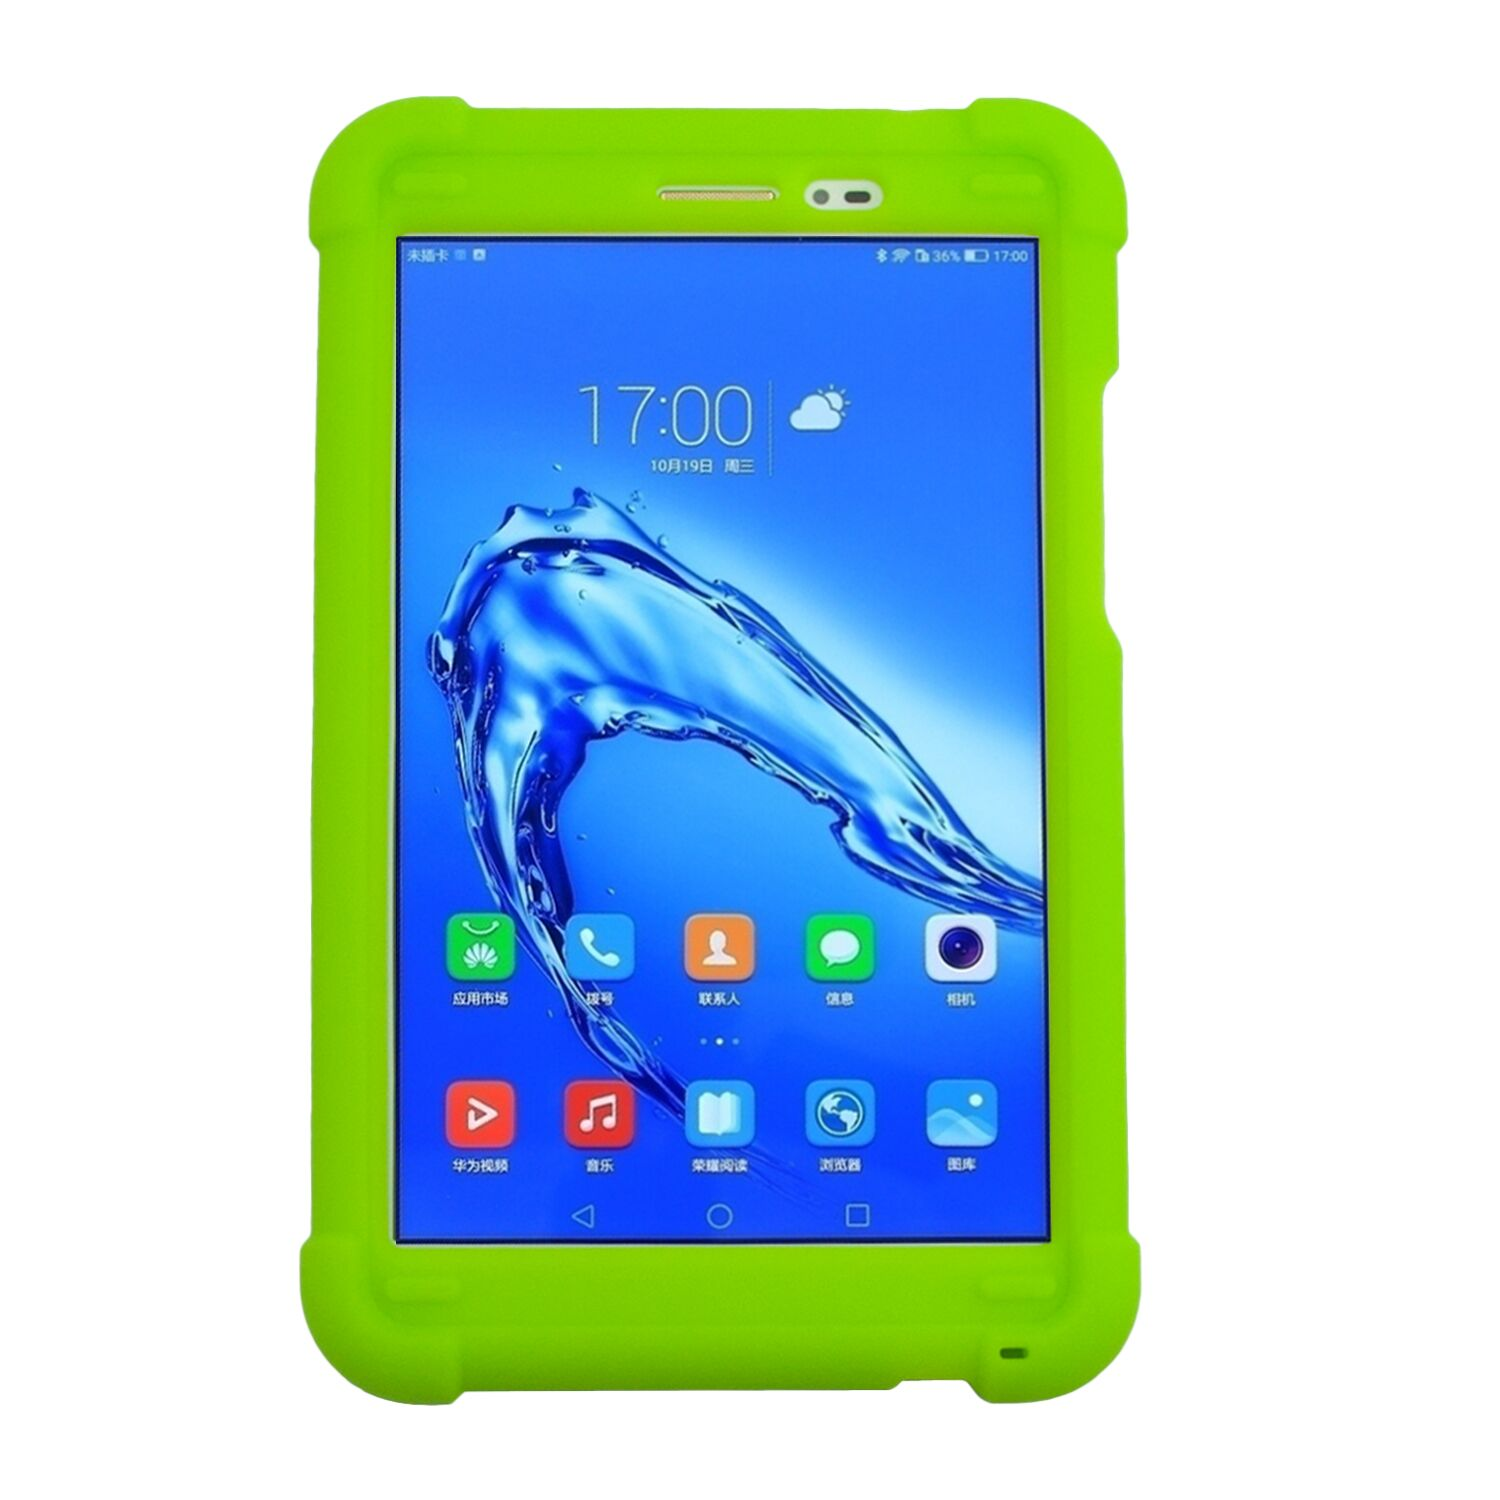 MingShore Silicone Case For Huawei T2 Tablet 2 AL00 AL01 8.0 Rugged Cover For Huawei MediaPad T2 Pro 8.0 JDN-W09 Tablet Case ultra slim fashion silicone case for huawei honor tablet 2 cover jdn al00 jdn w09 mediapad t2 8 pro protective cover stylus